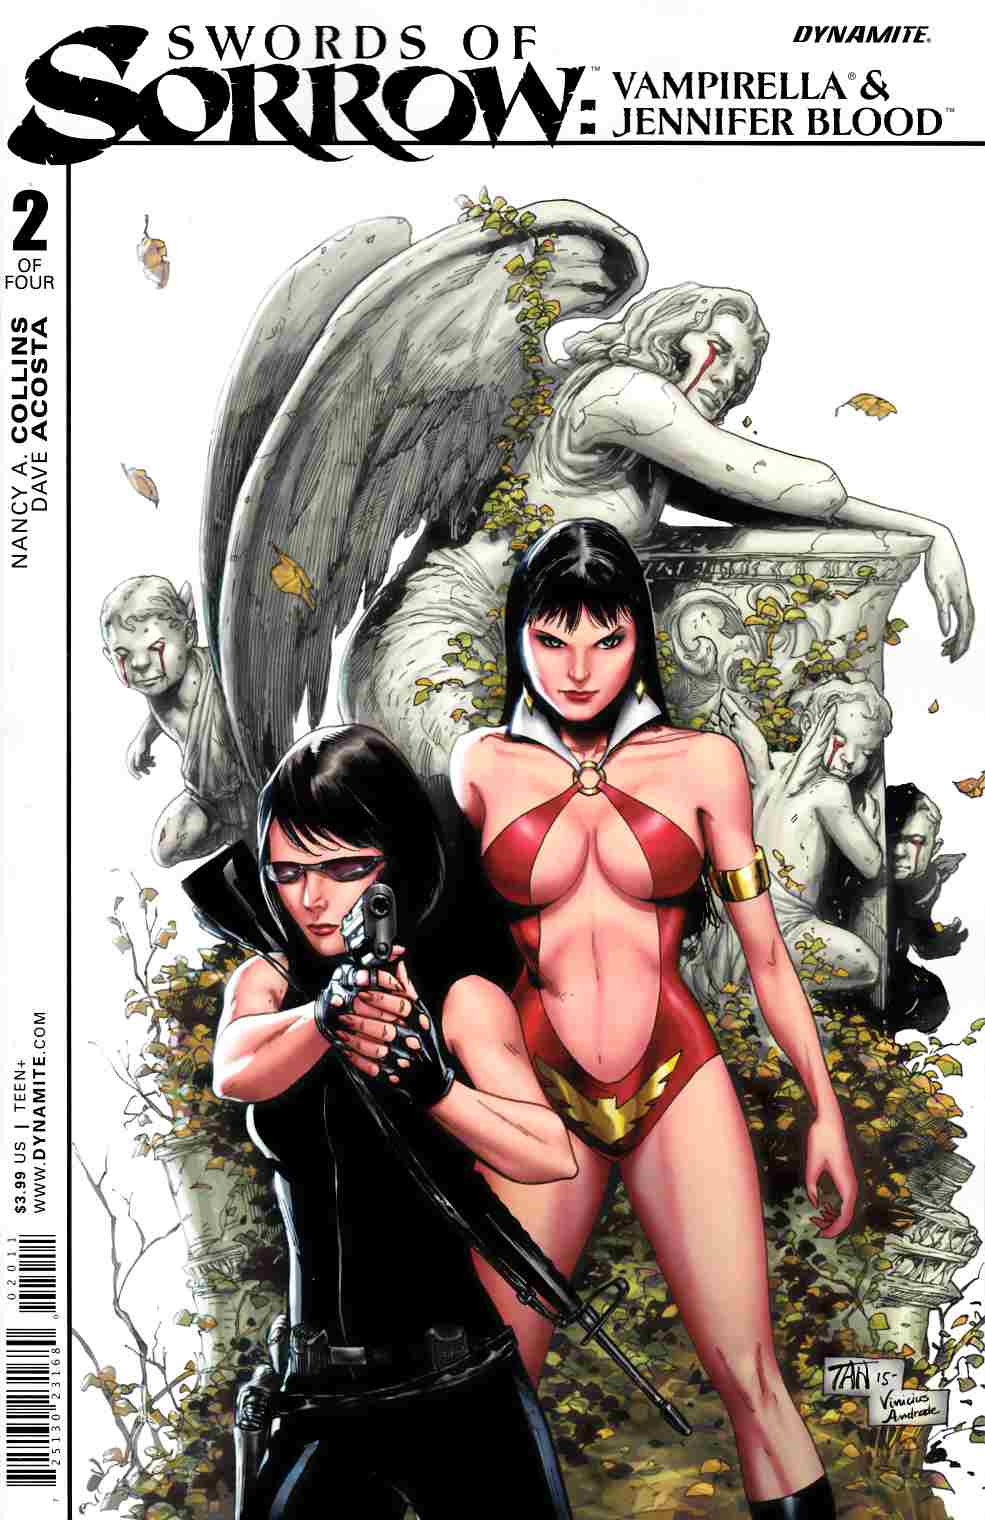 Swords of Sorrow Vampirella Jennifer Blood #2 [Dynamite Comic]